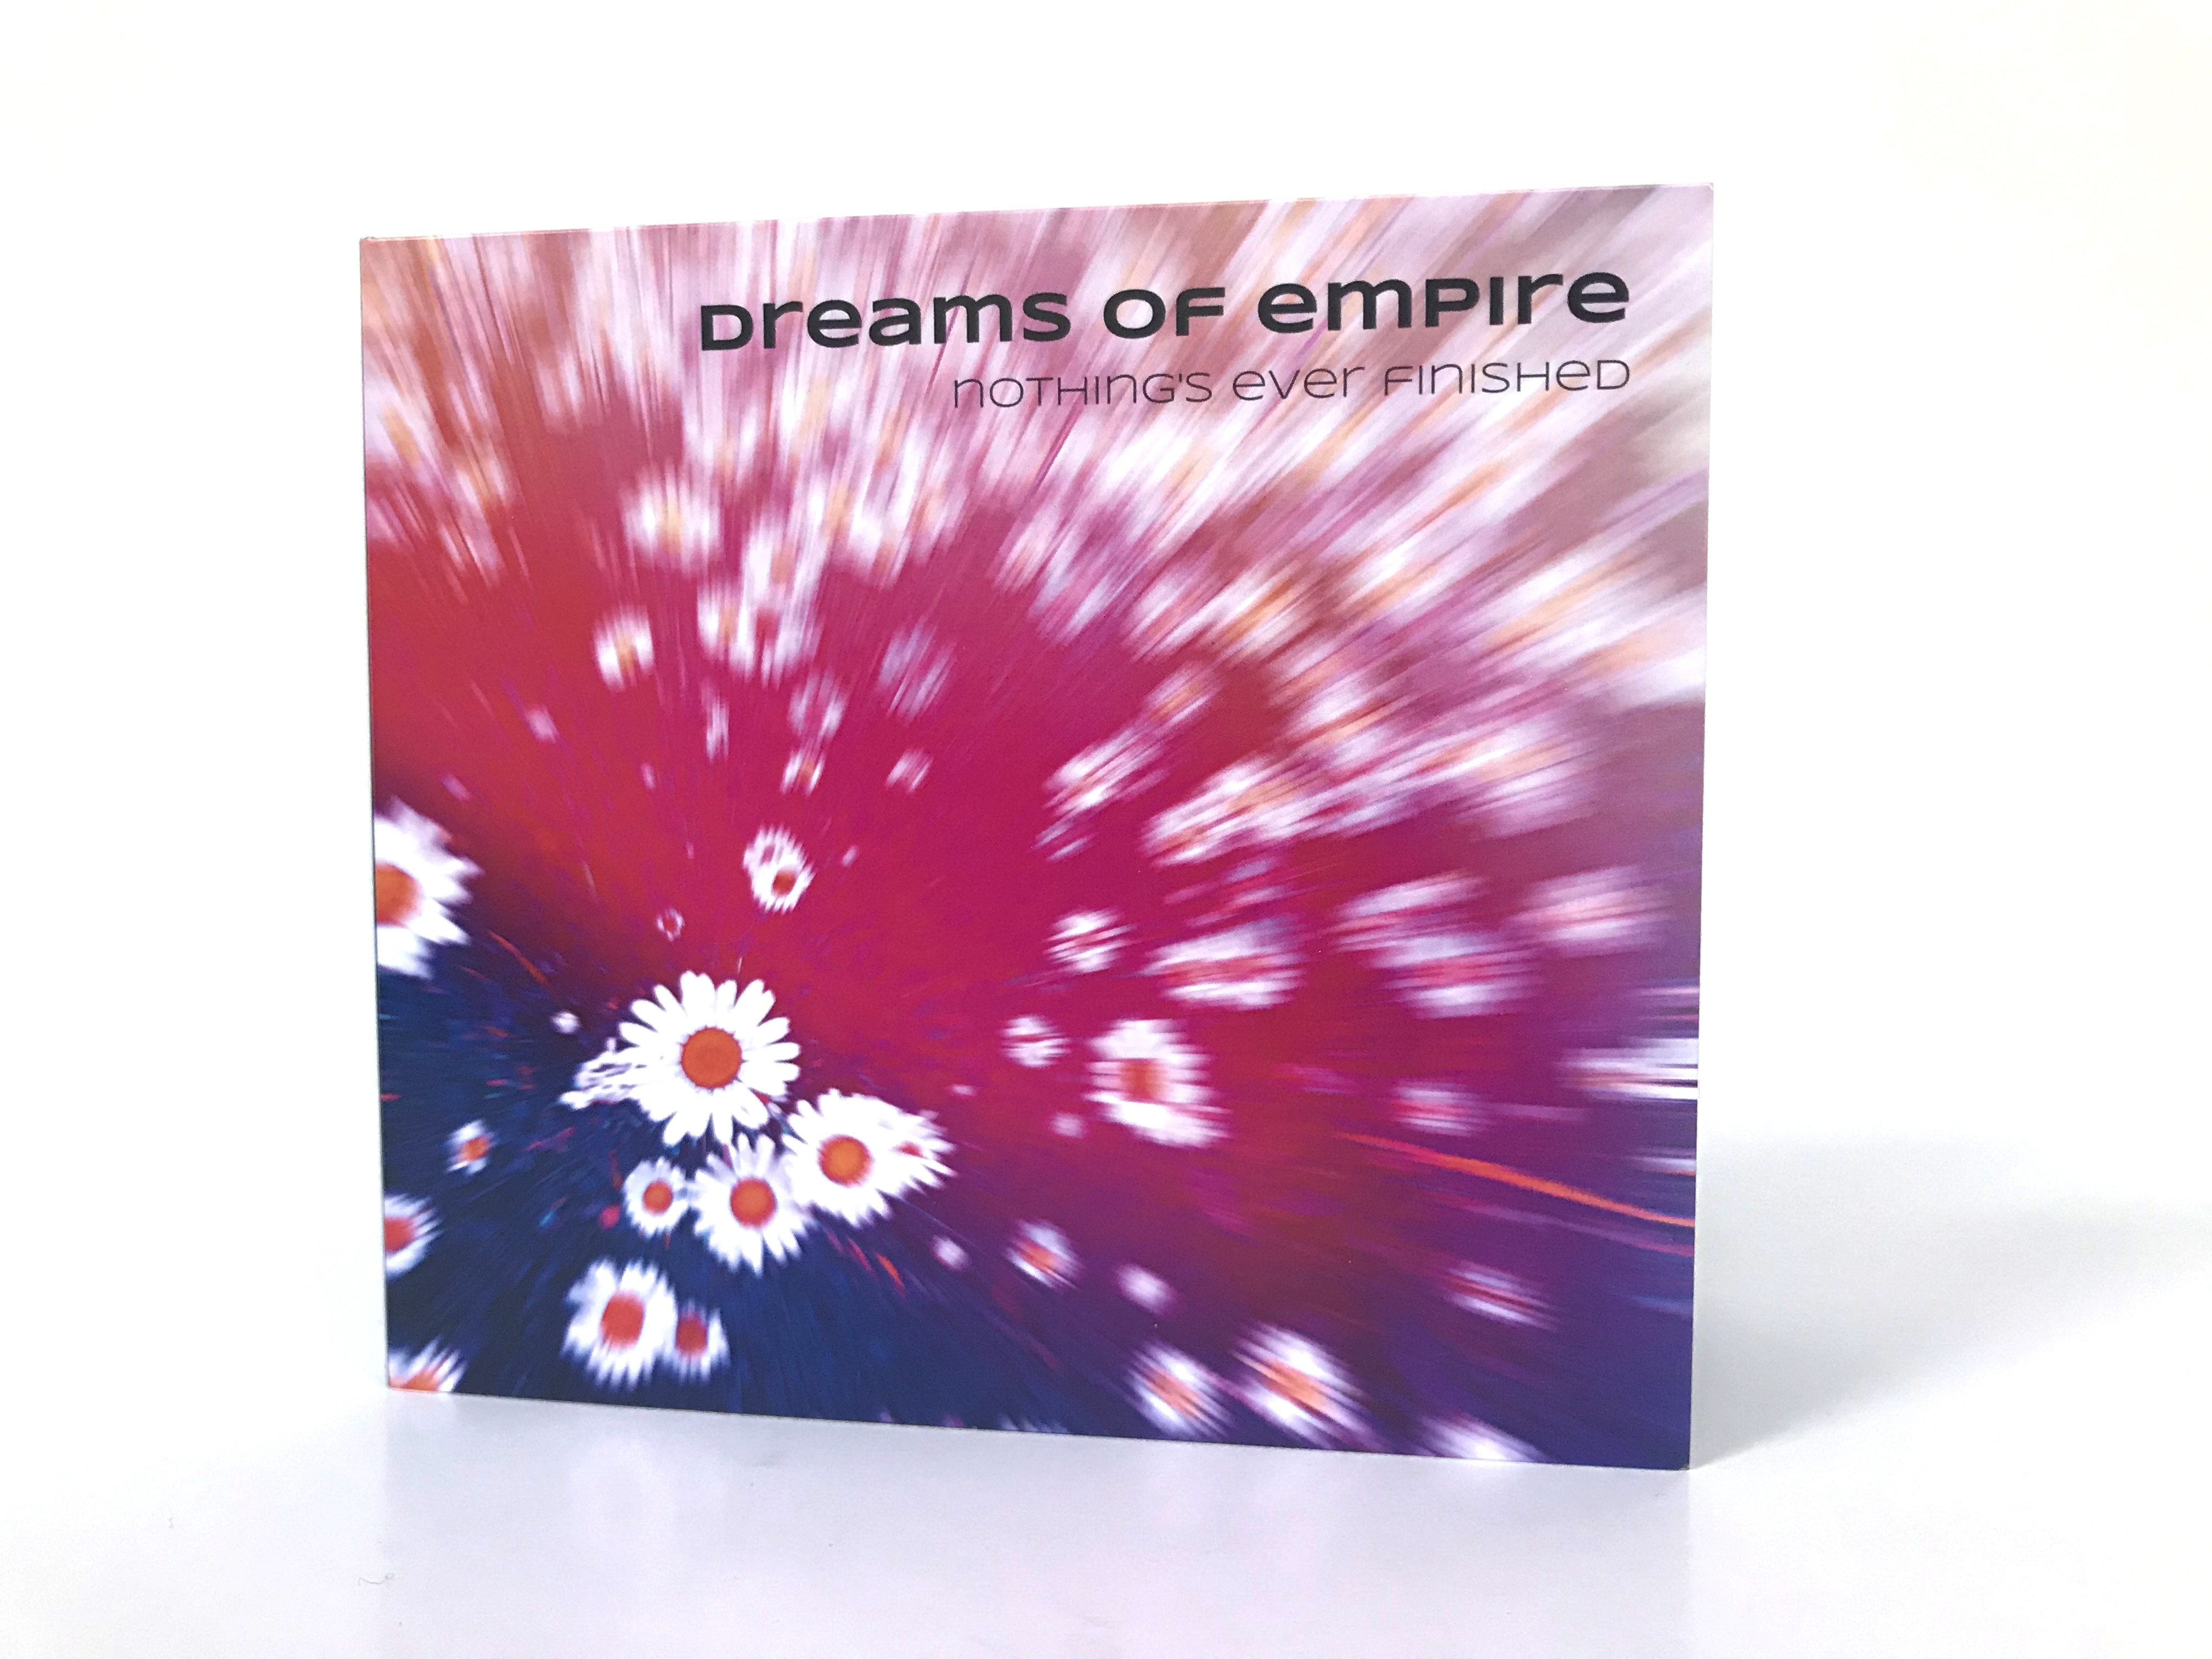 Dreams of Empire - Nothing's Ever Finished CD cover